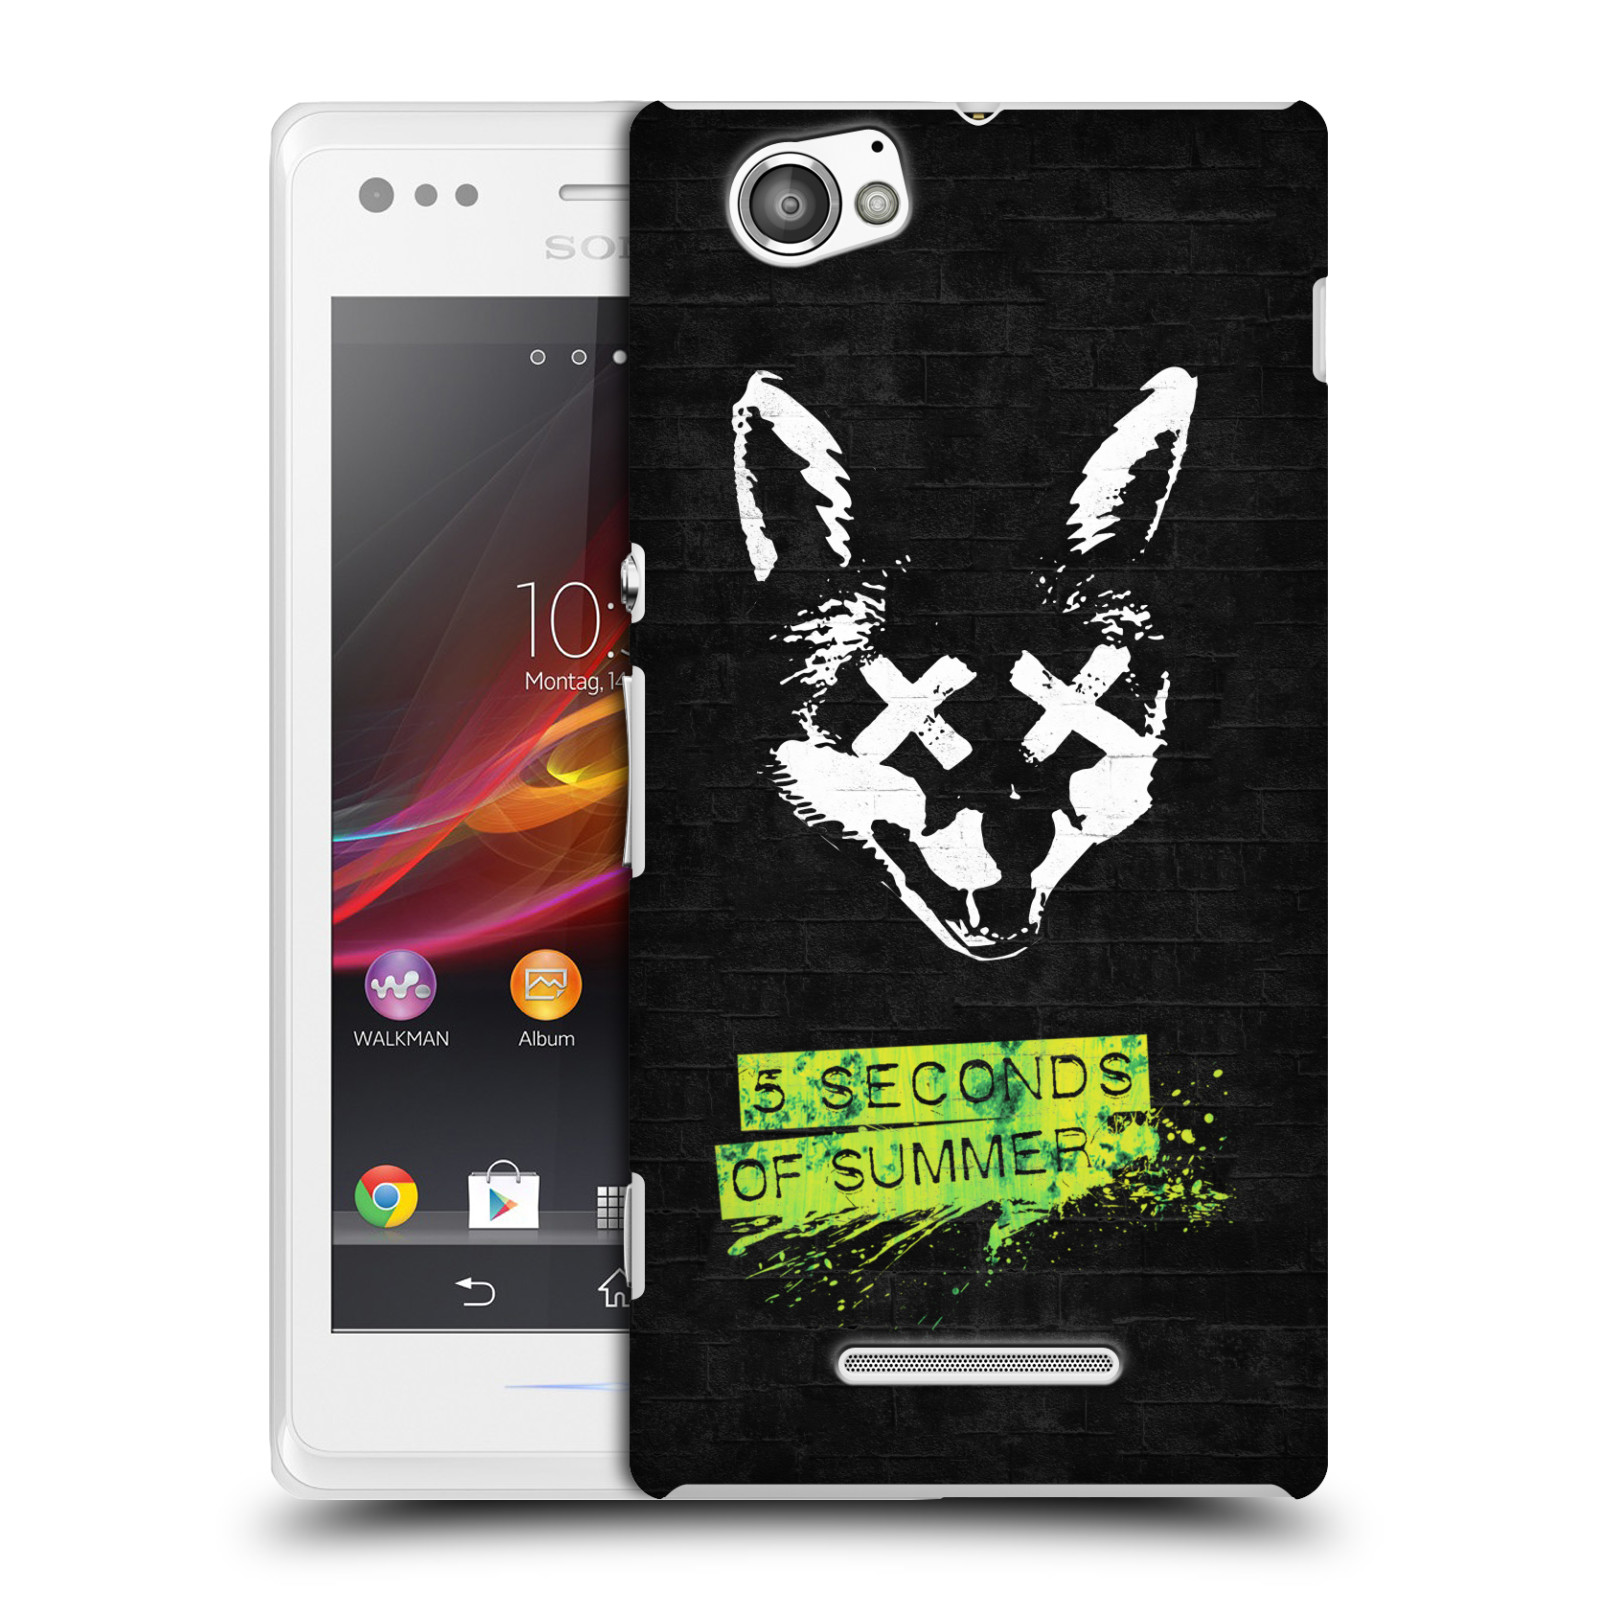 Plastové pouzdro na mobil Sony Xperia M C1905 HEAD CASE 5 Seconds of Summer - Fox